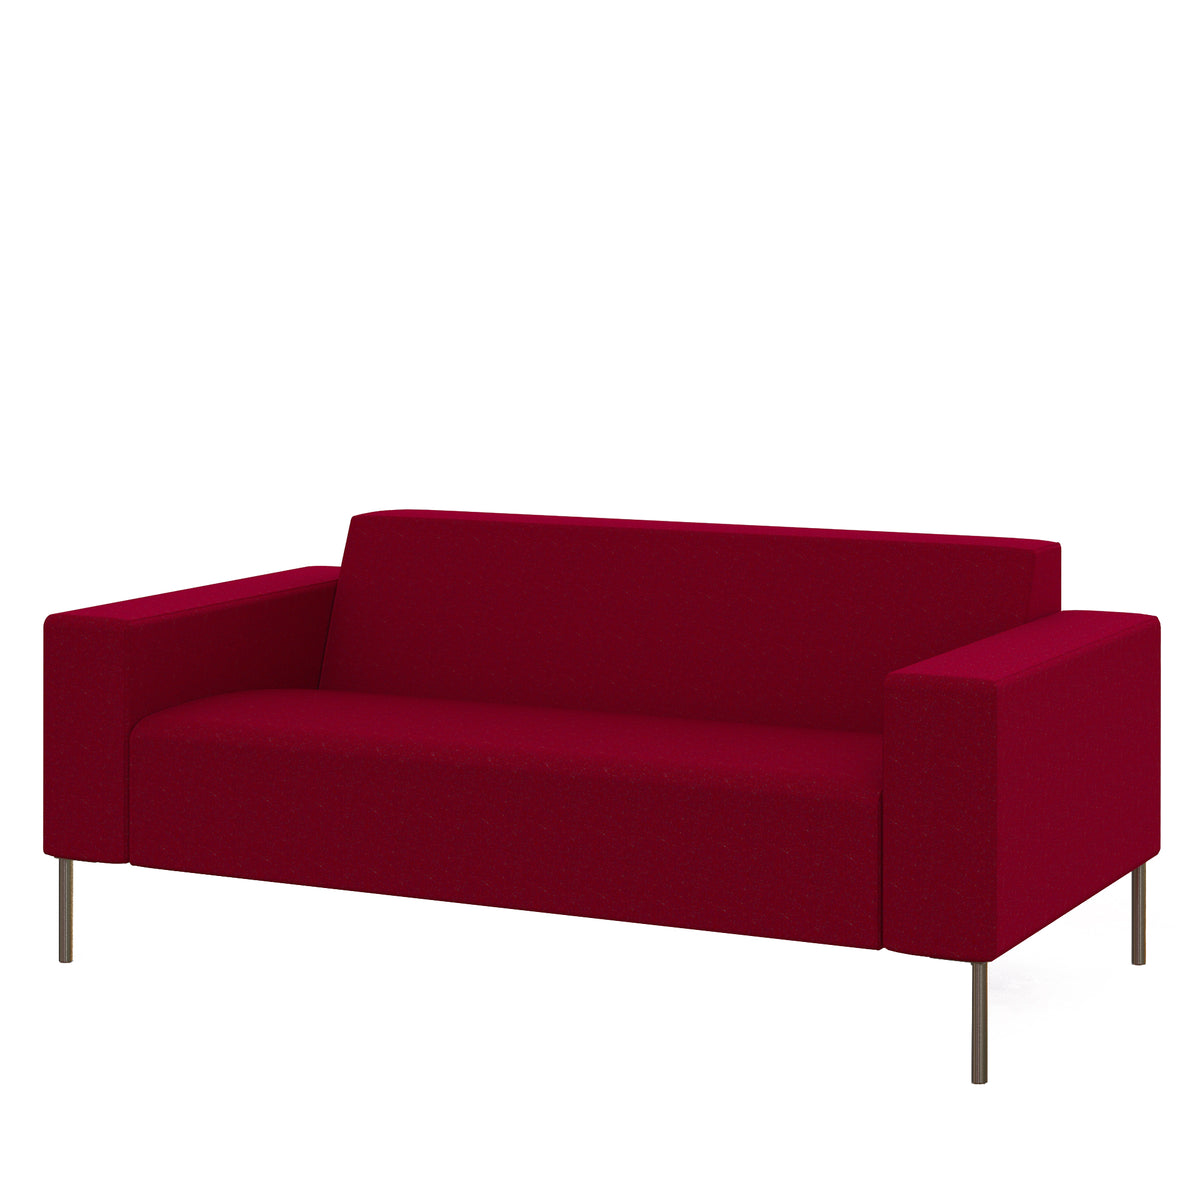 Hitch Mylius Office HM18 Kilburn Origin Two Seat Sofa with Brushed Stainless Steel Legs